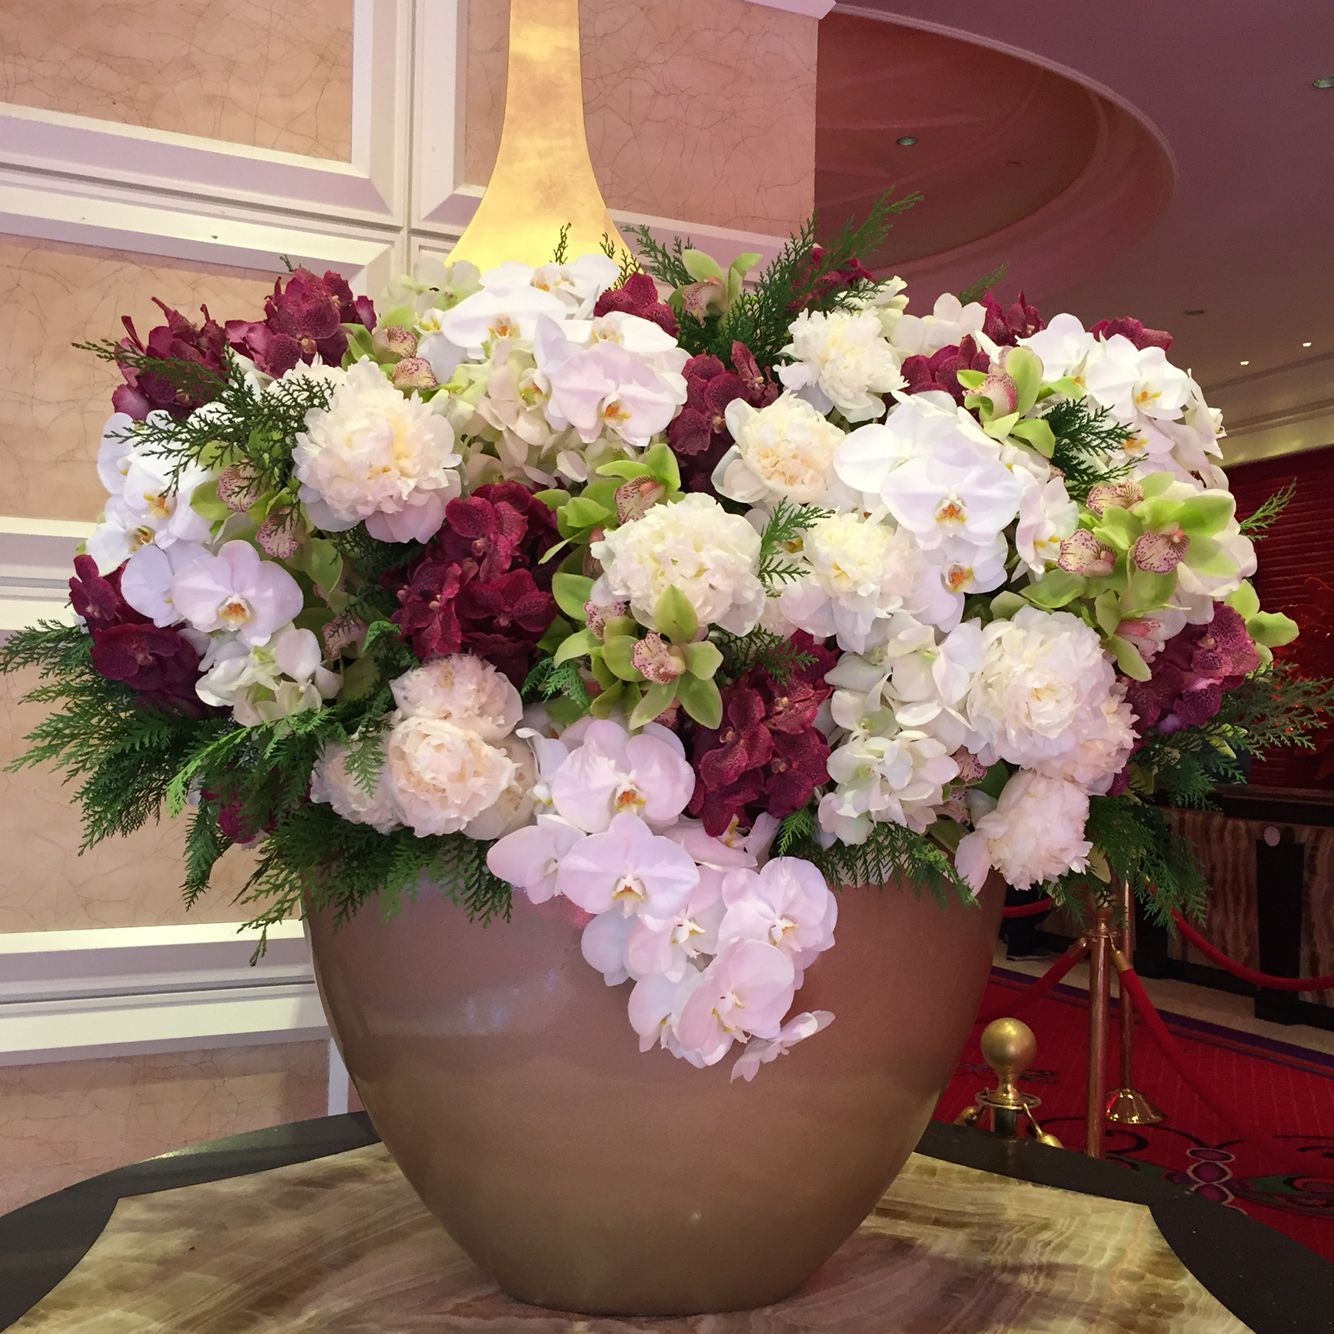 Gorgeous flower arrangements at the encore hotel lobby in